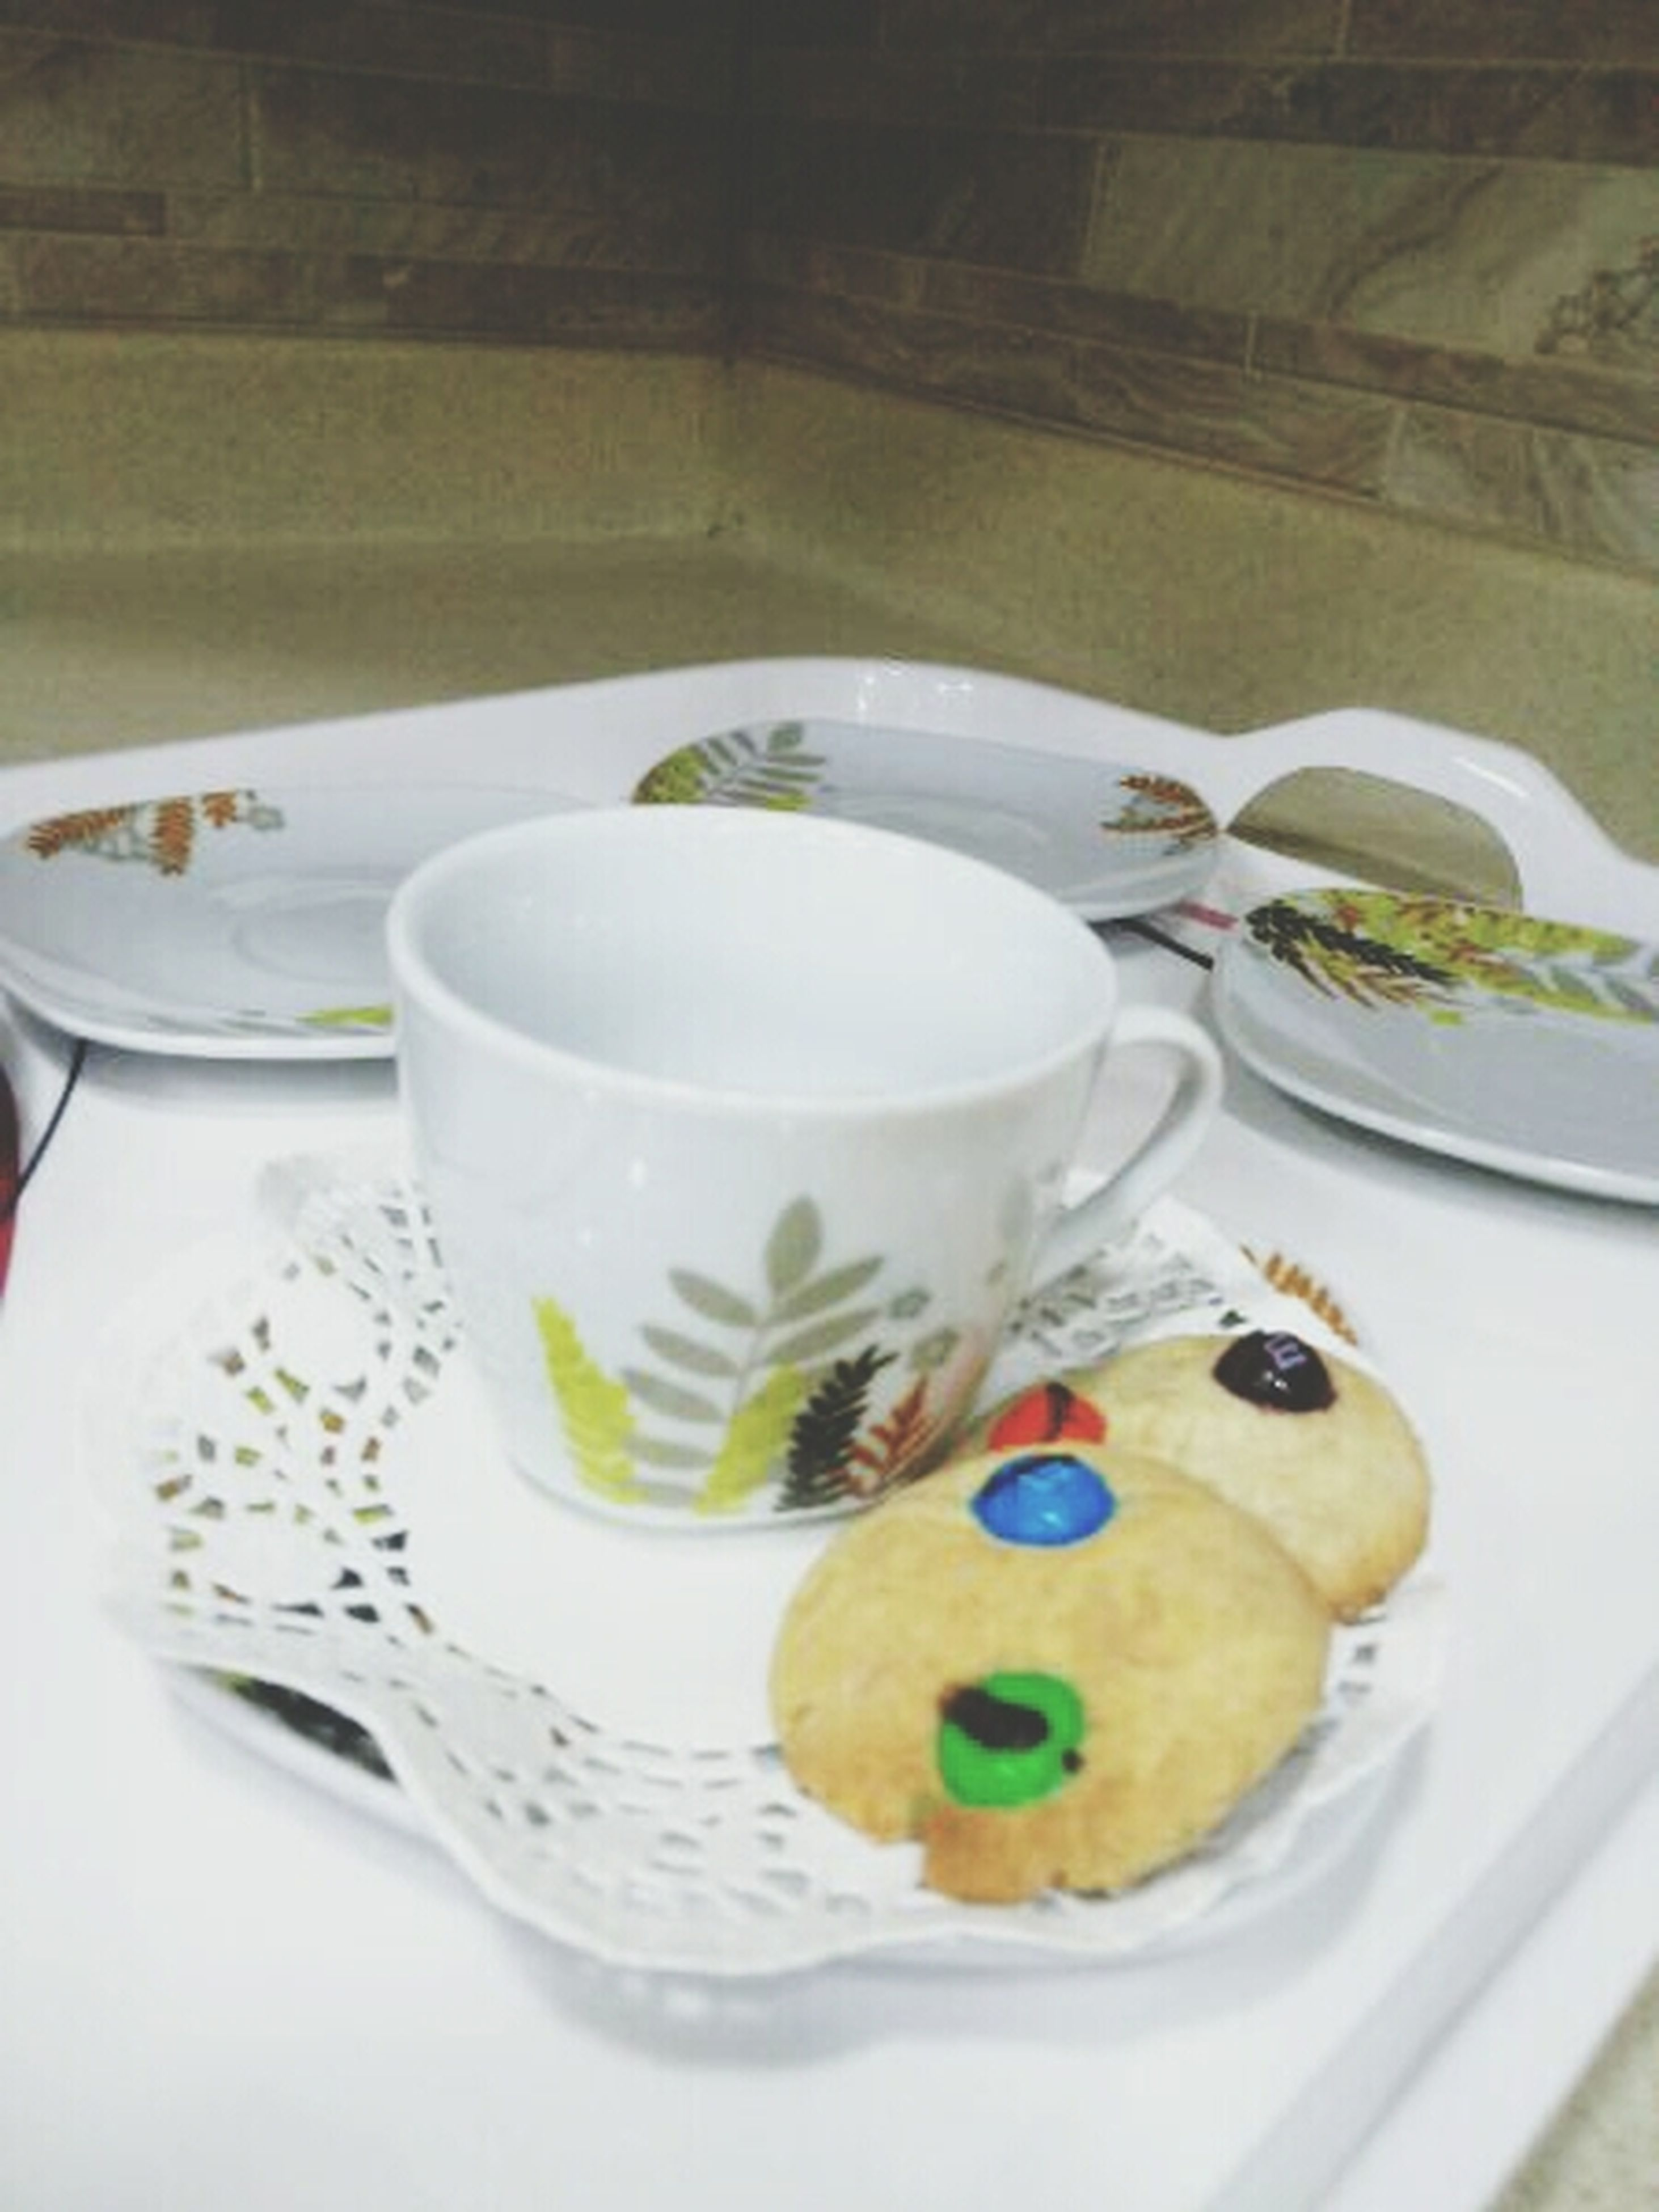 indoors, food and drink, freshness, still life, table, sweet food, coffee cup, drink, plate, food, refreshment, high angle view, ready-to-eat, saucer, coffee - drink, dessert, cup, indulgence, breakfast, spoon